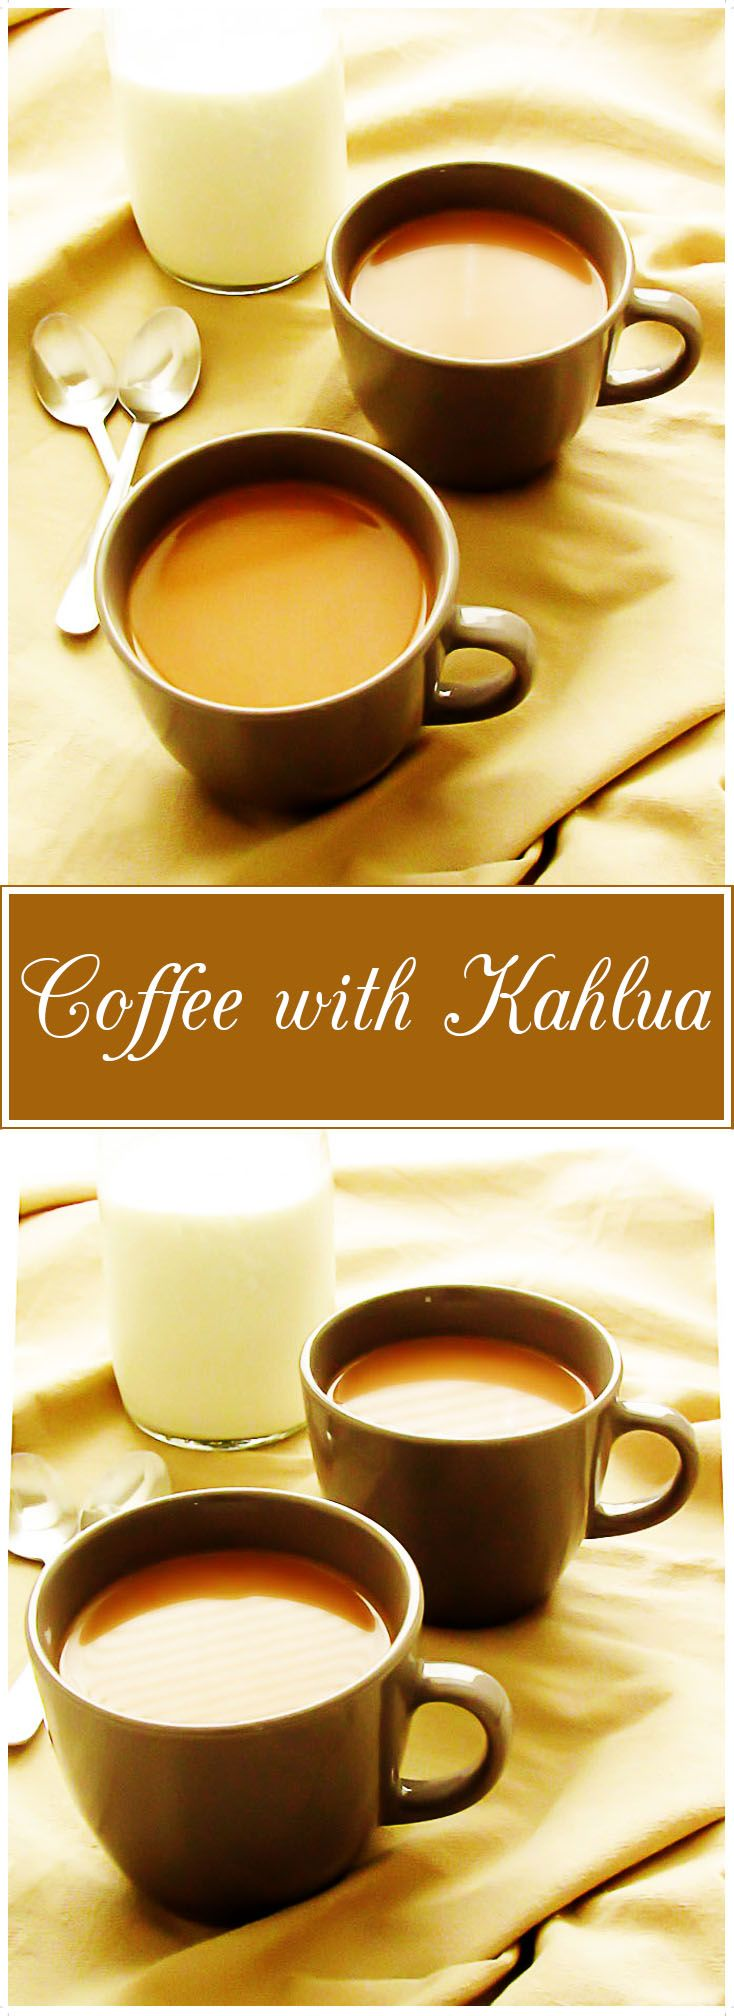 how to drink kahlua liqueur